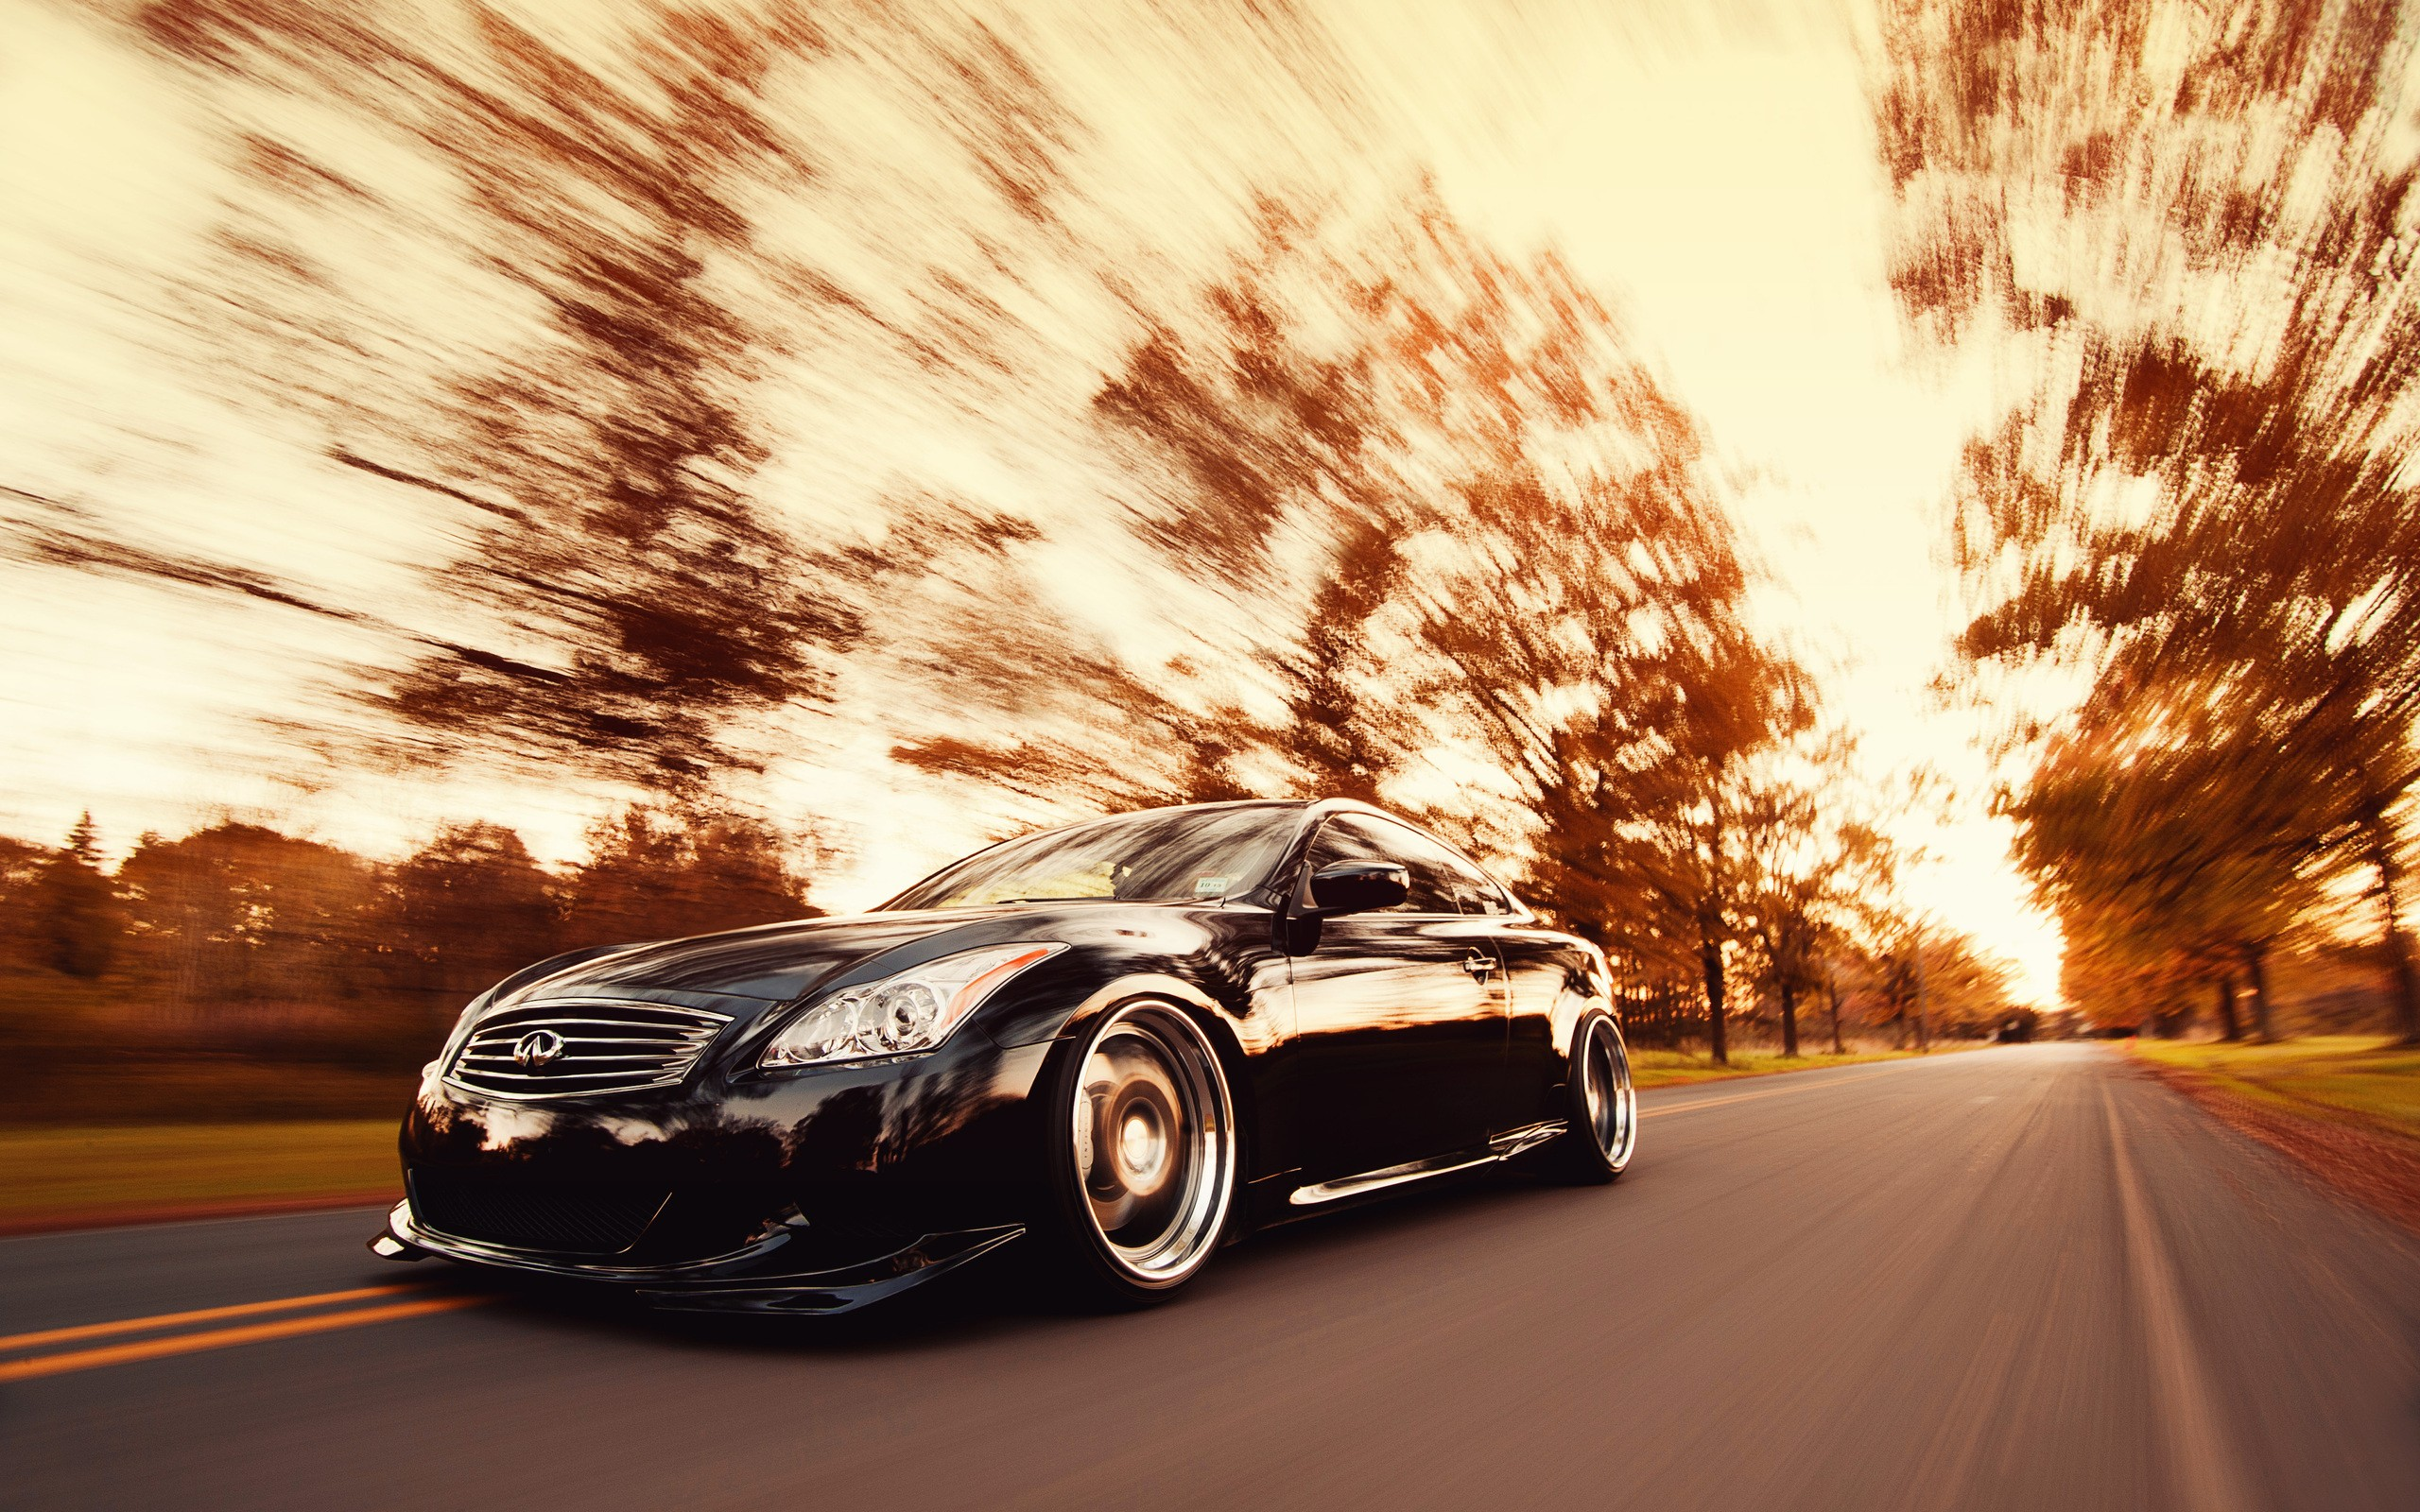 Beautiful Stance Wallpaper | B.SCB Wallpapers